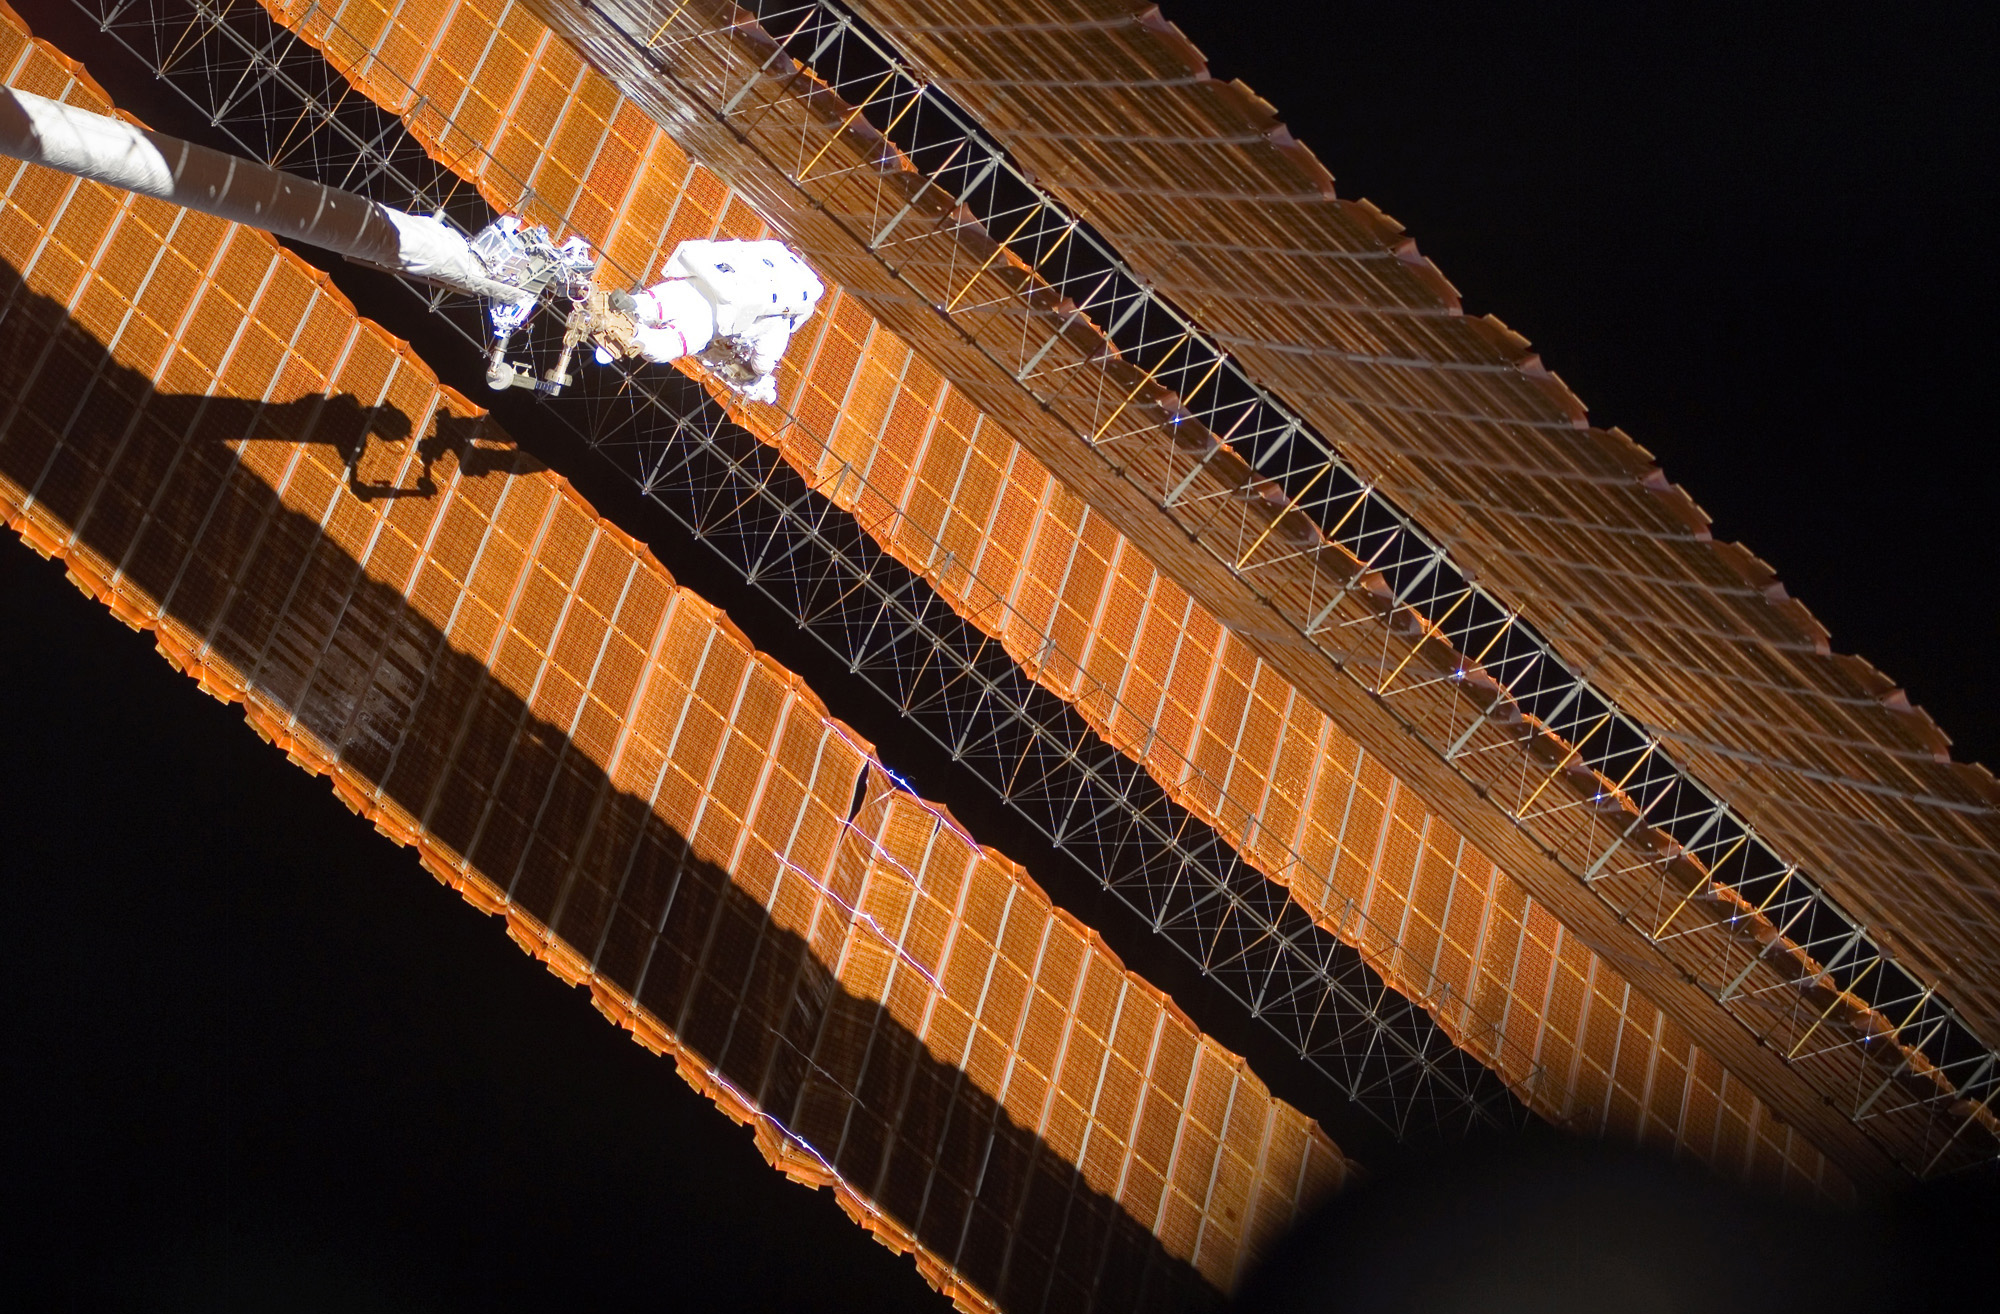 solar powered space station - photo #35